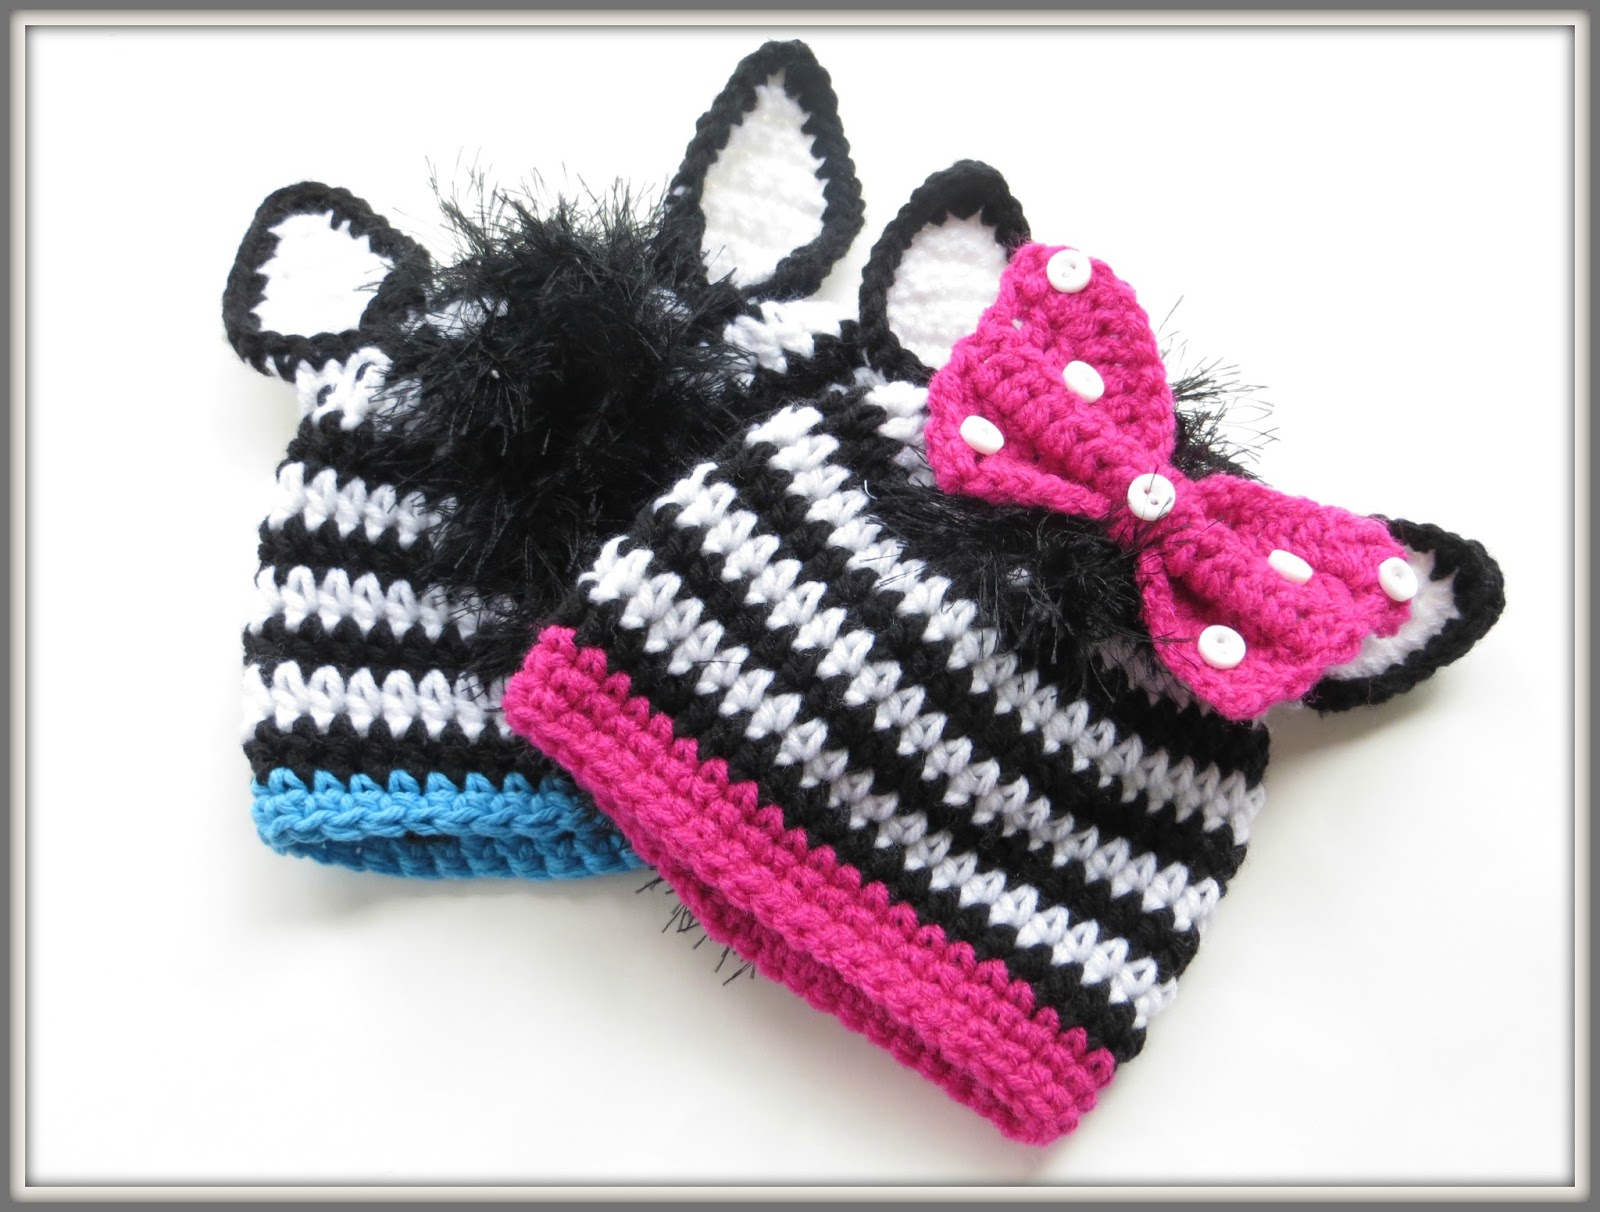 Free crochet pattern for zebra hat manet for crochet dreamz zebra beanie crochet pattern for boys or bankloansurffo Gallery